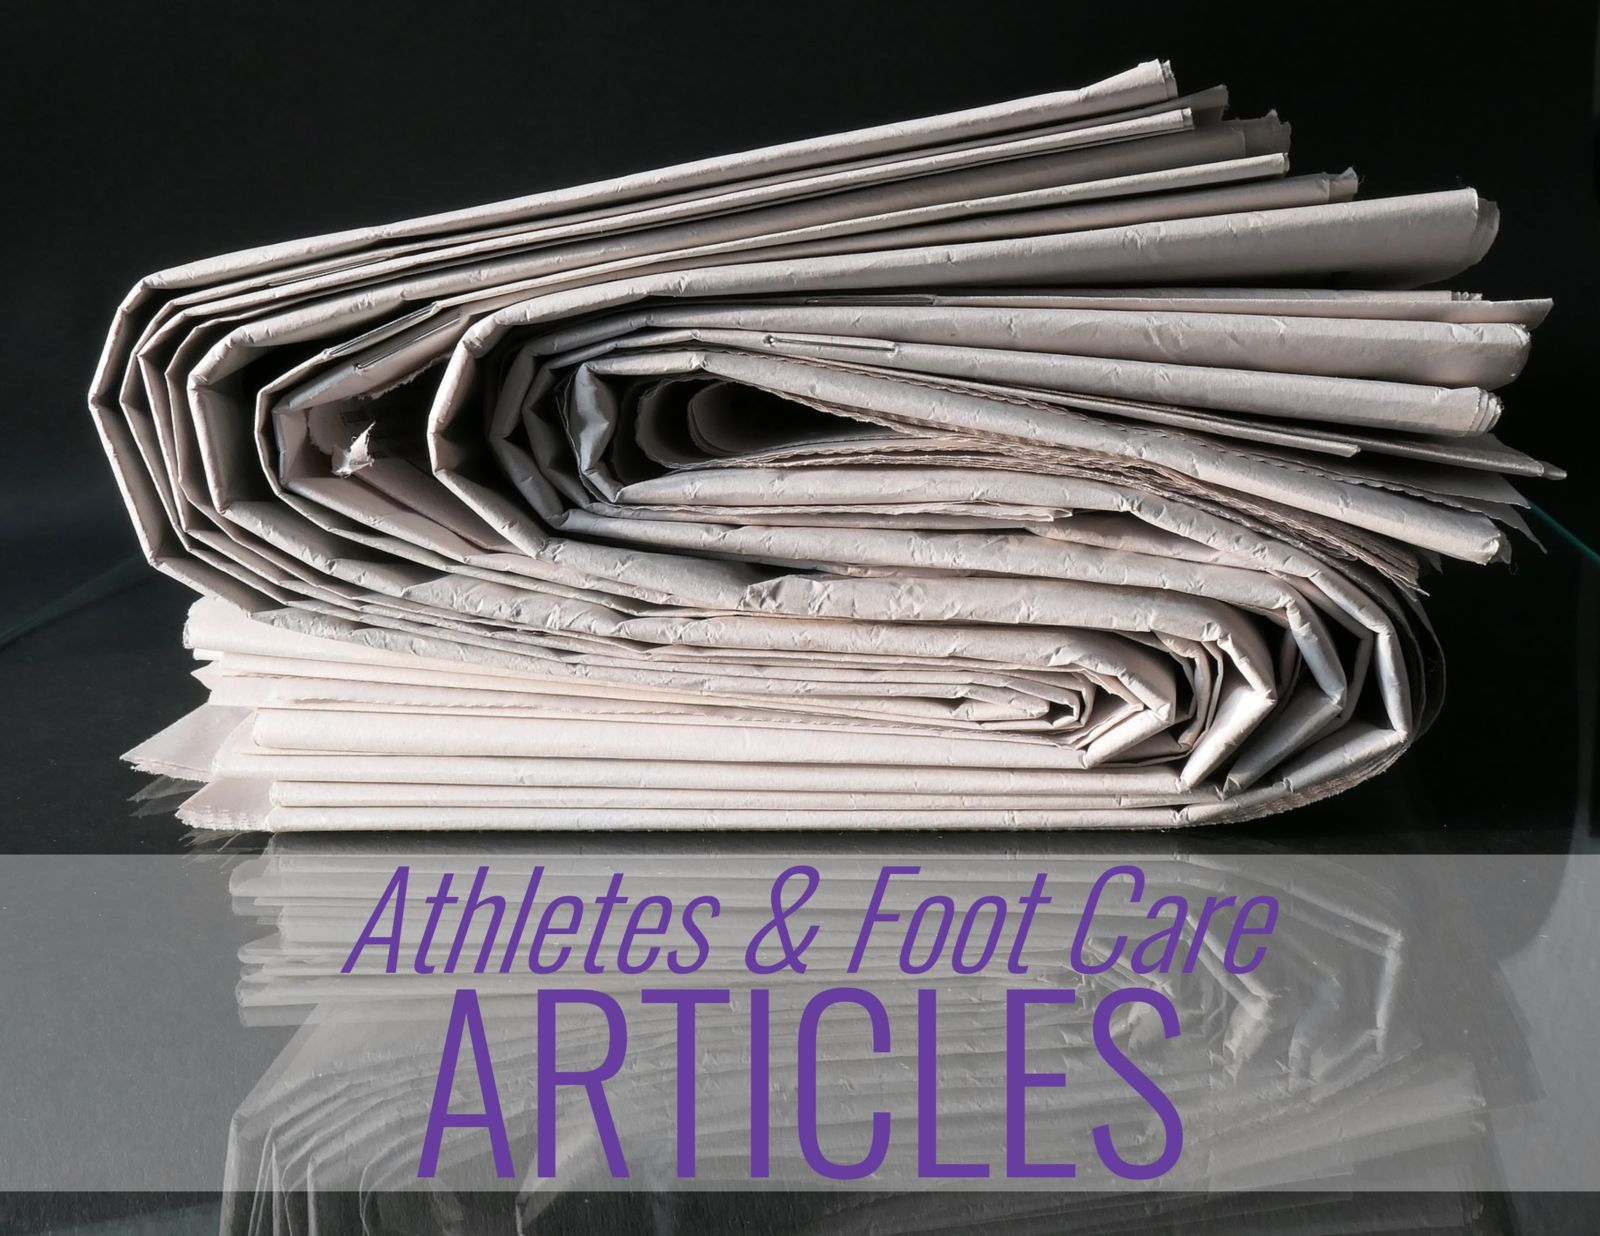 newspapers and the words: Athletes & Foot Care Articles